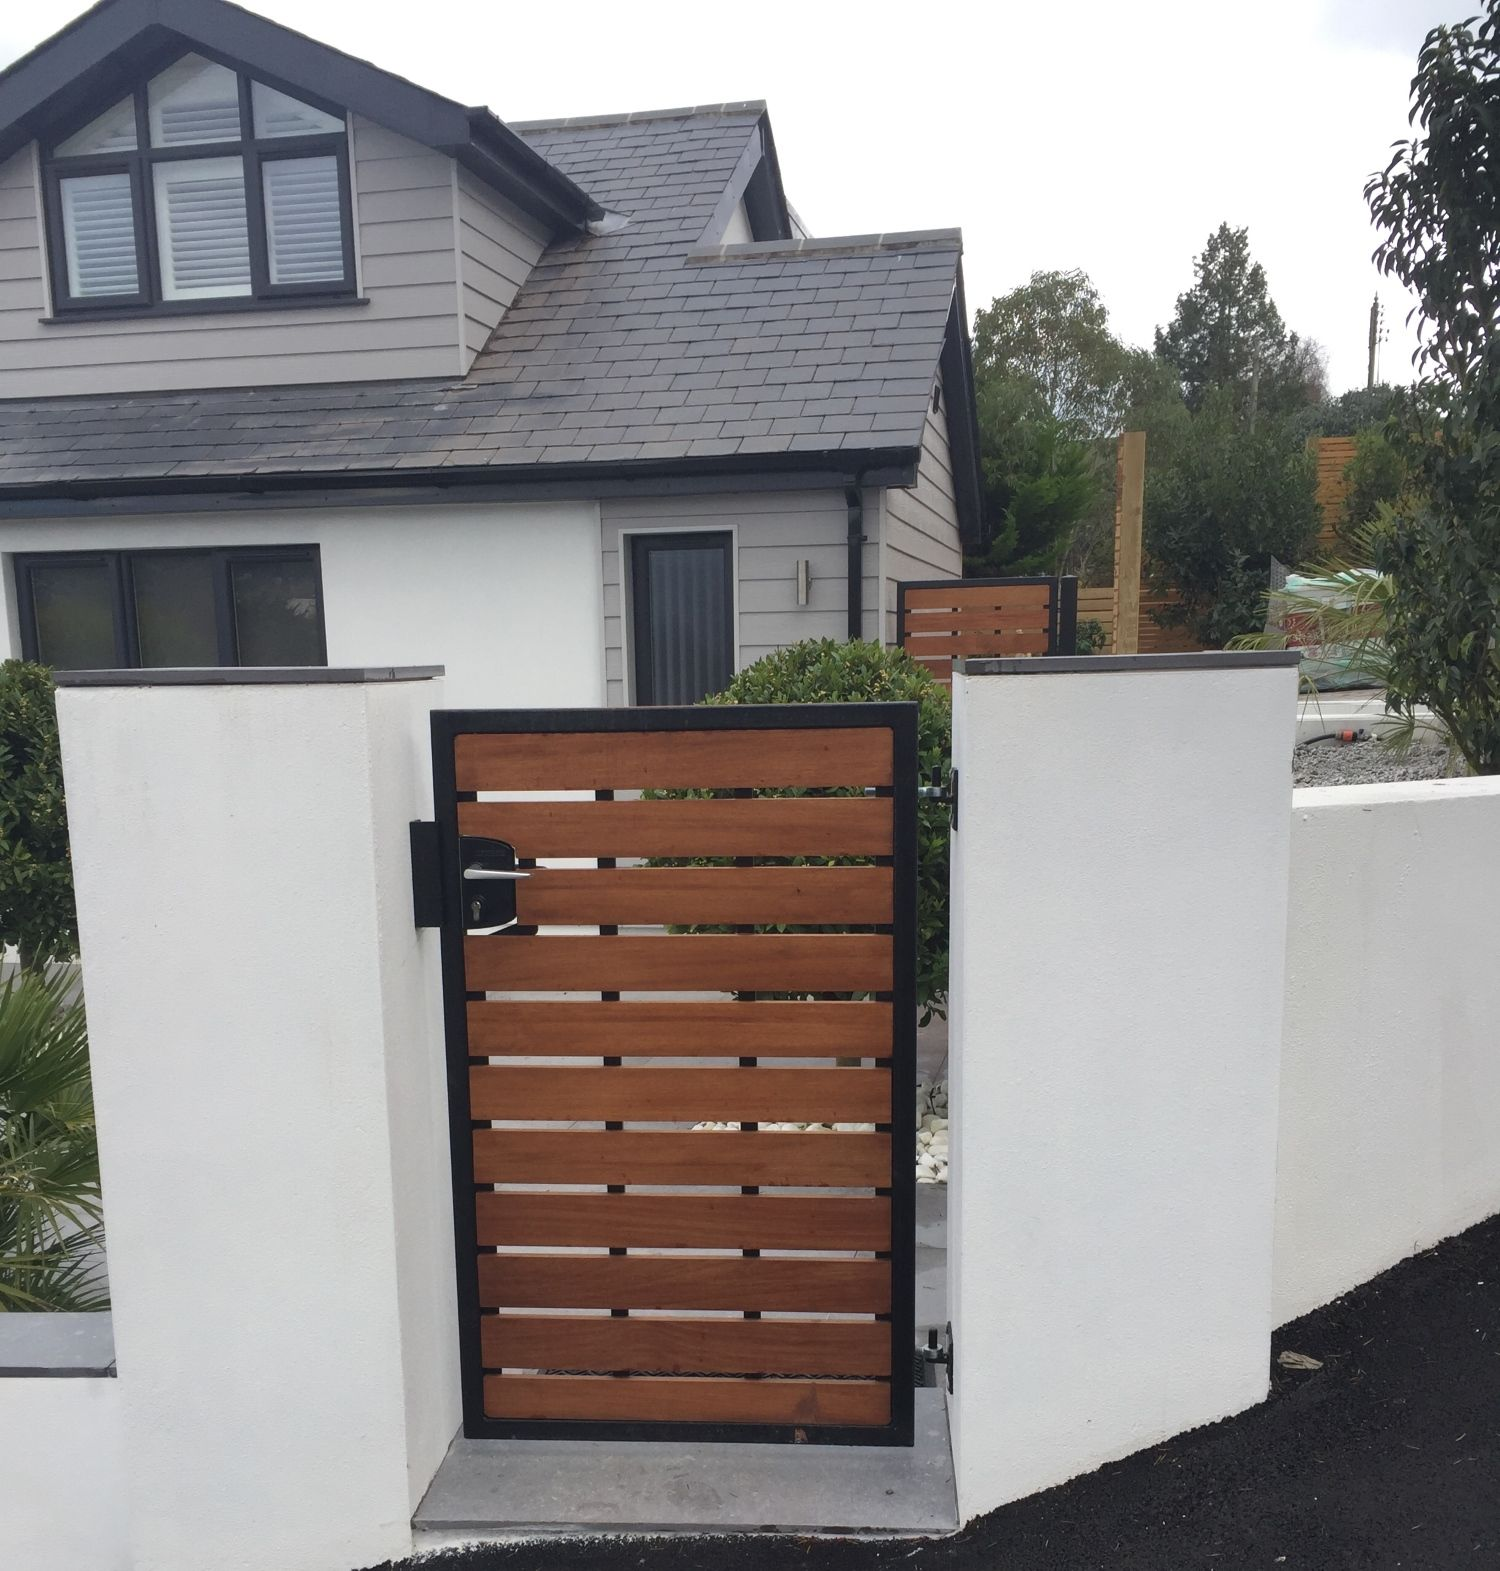 Modern garden/ side gate - the Kingston. Deep metal framed with iroko (hardwood) cladding. Fitted key lock and handle for added security. Made to any width or height in the UK. See our website for more details.